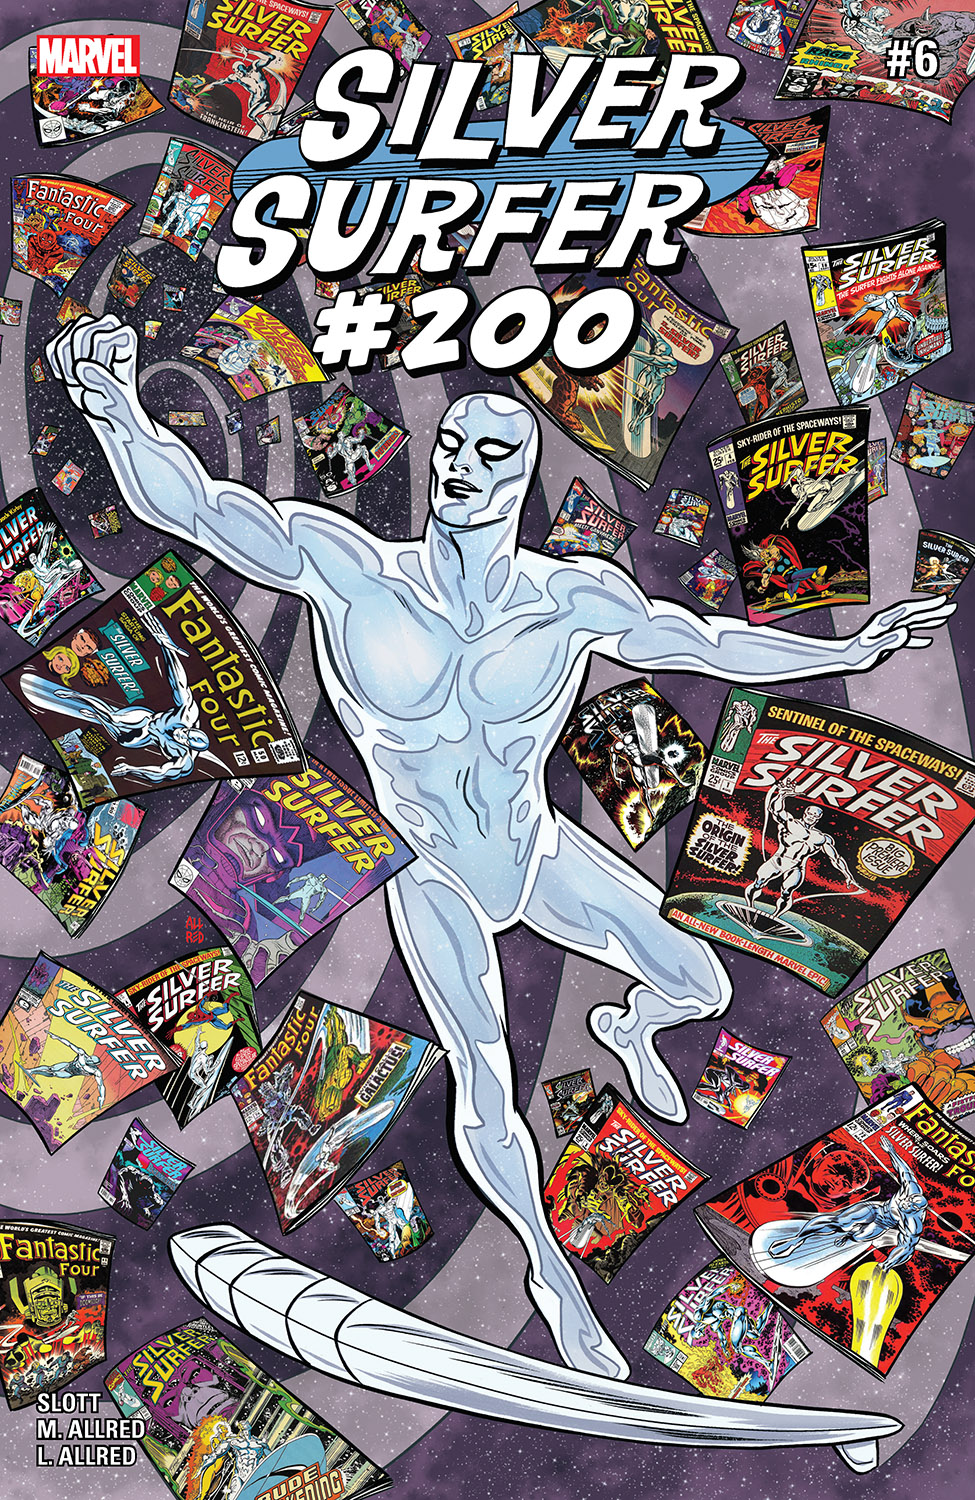 Silver Surfer (2016) #6